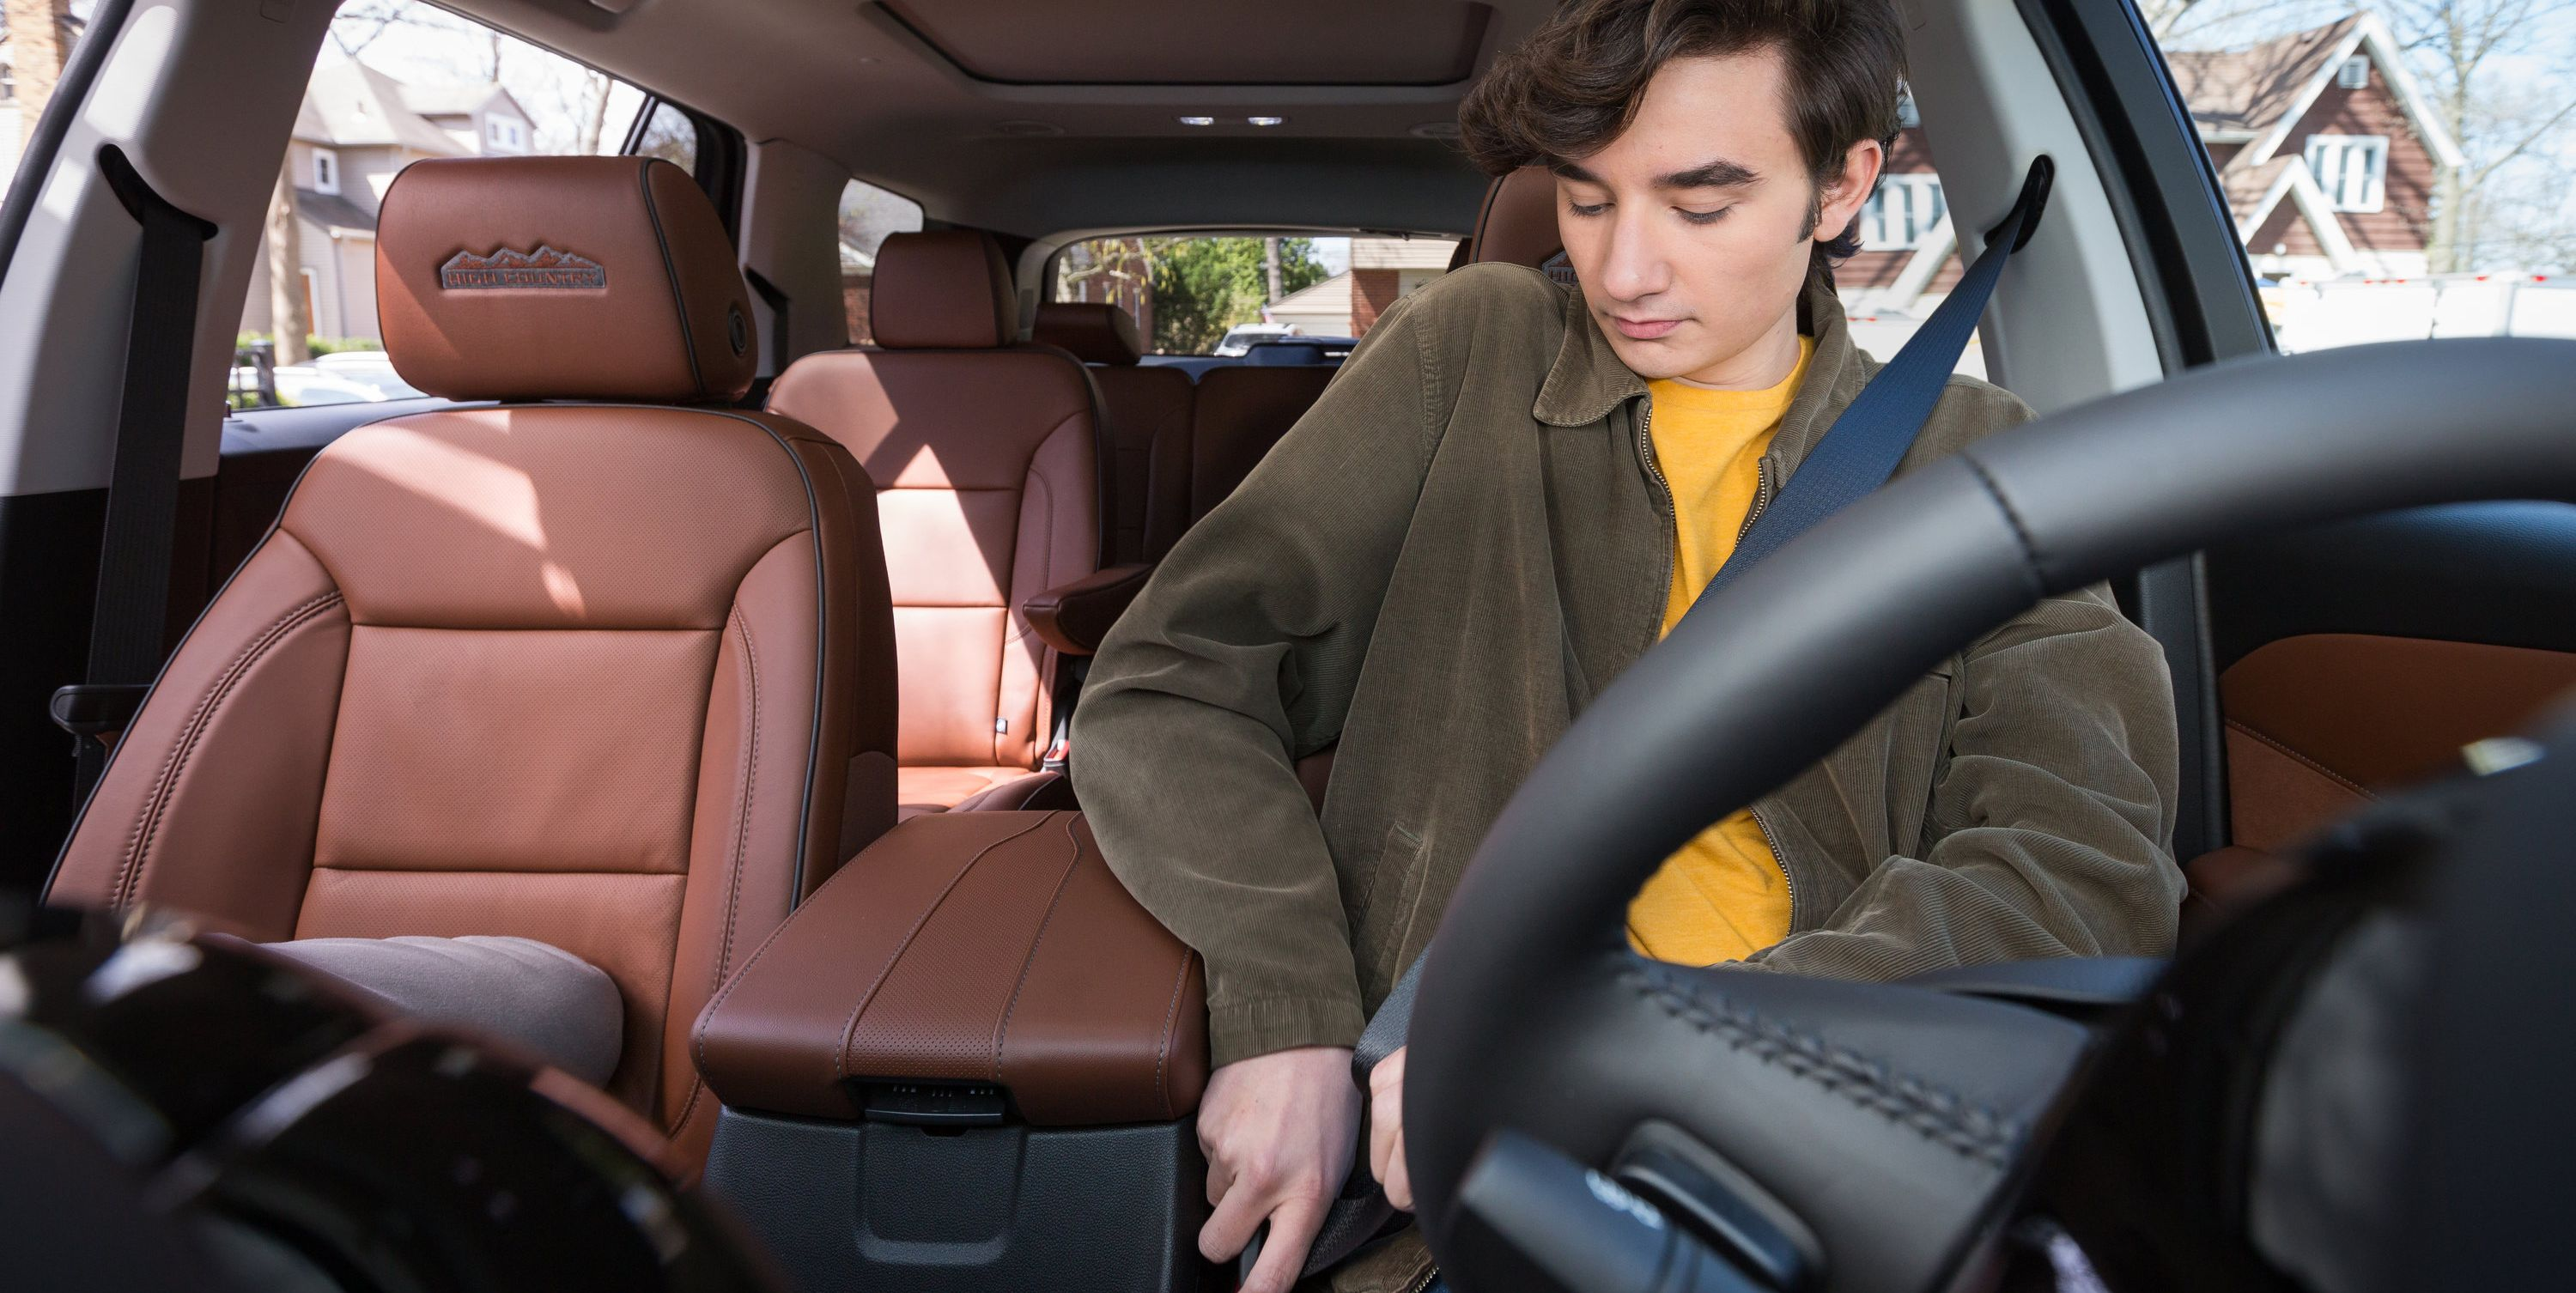 New Feature on 2020 Chevrolet and GMC Models Won't Let Car Start Till Driver Fastens Seatbelt